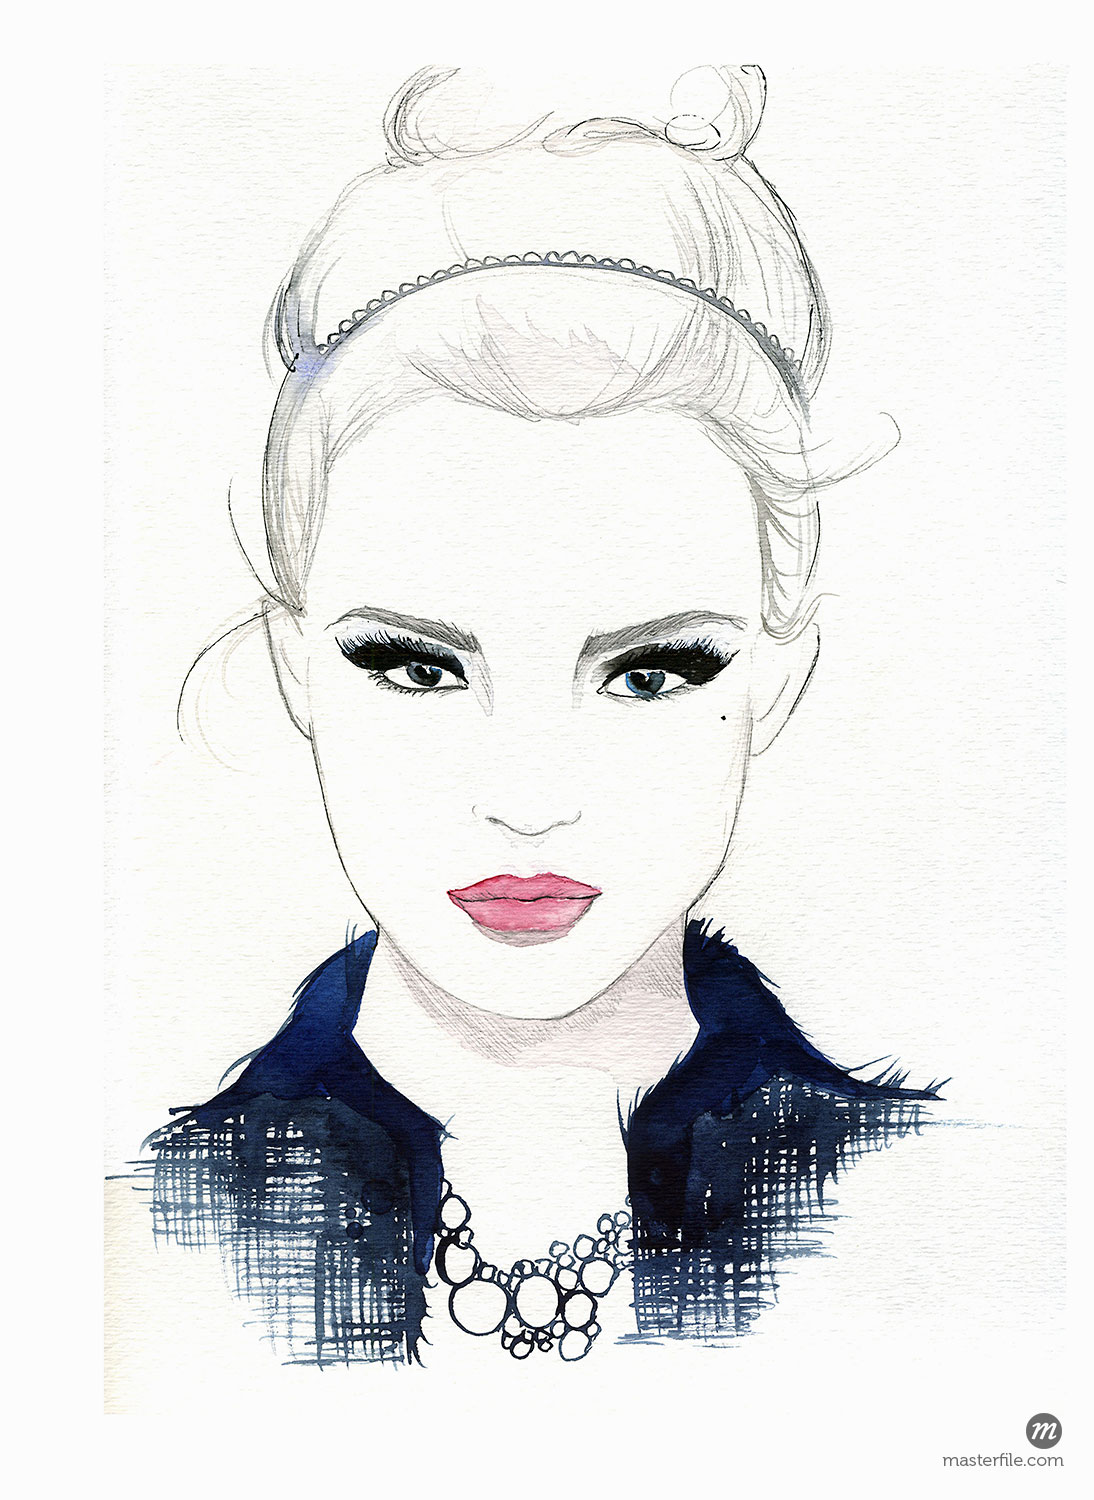 Watercolour portrait of beautiful woman wearing alice band © Jessica Durrant /Ikon Images / Masterfile